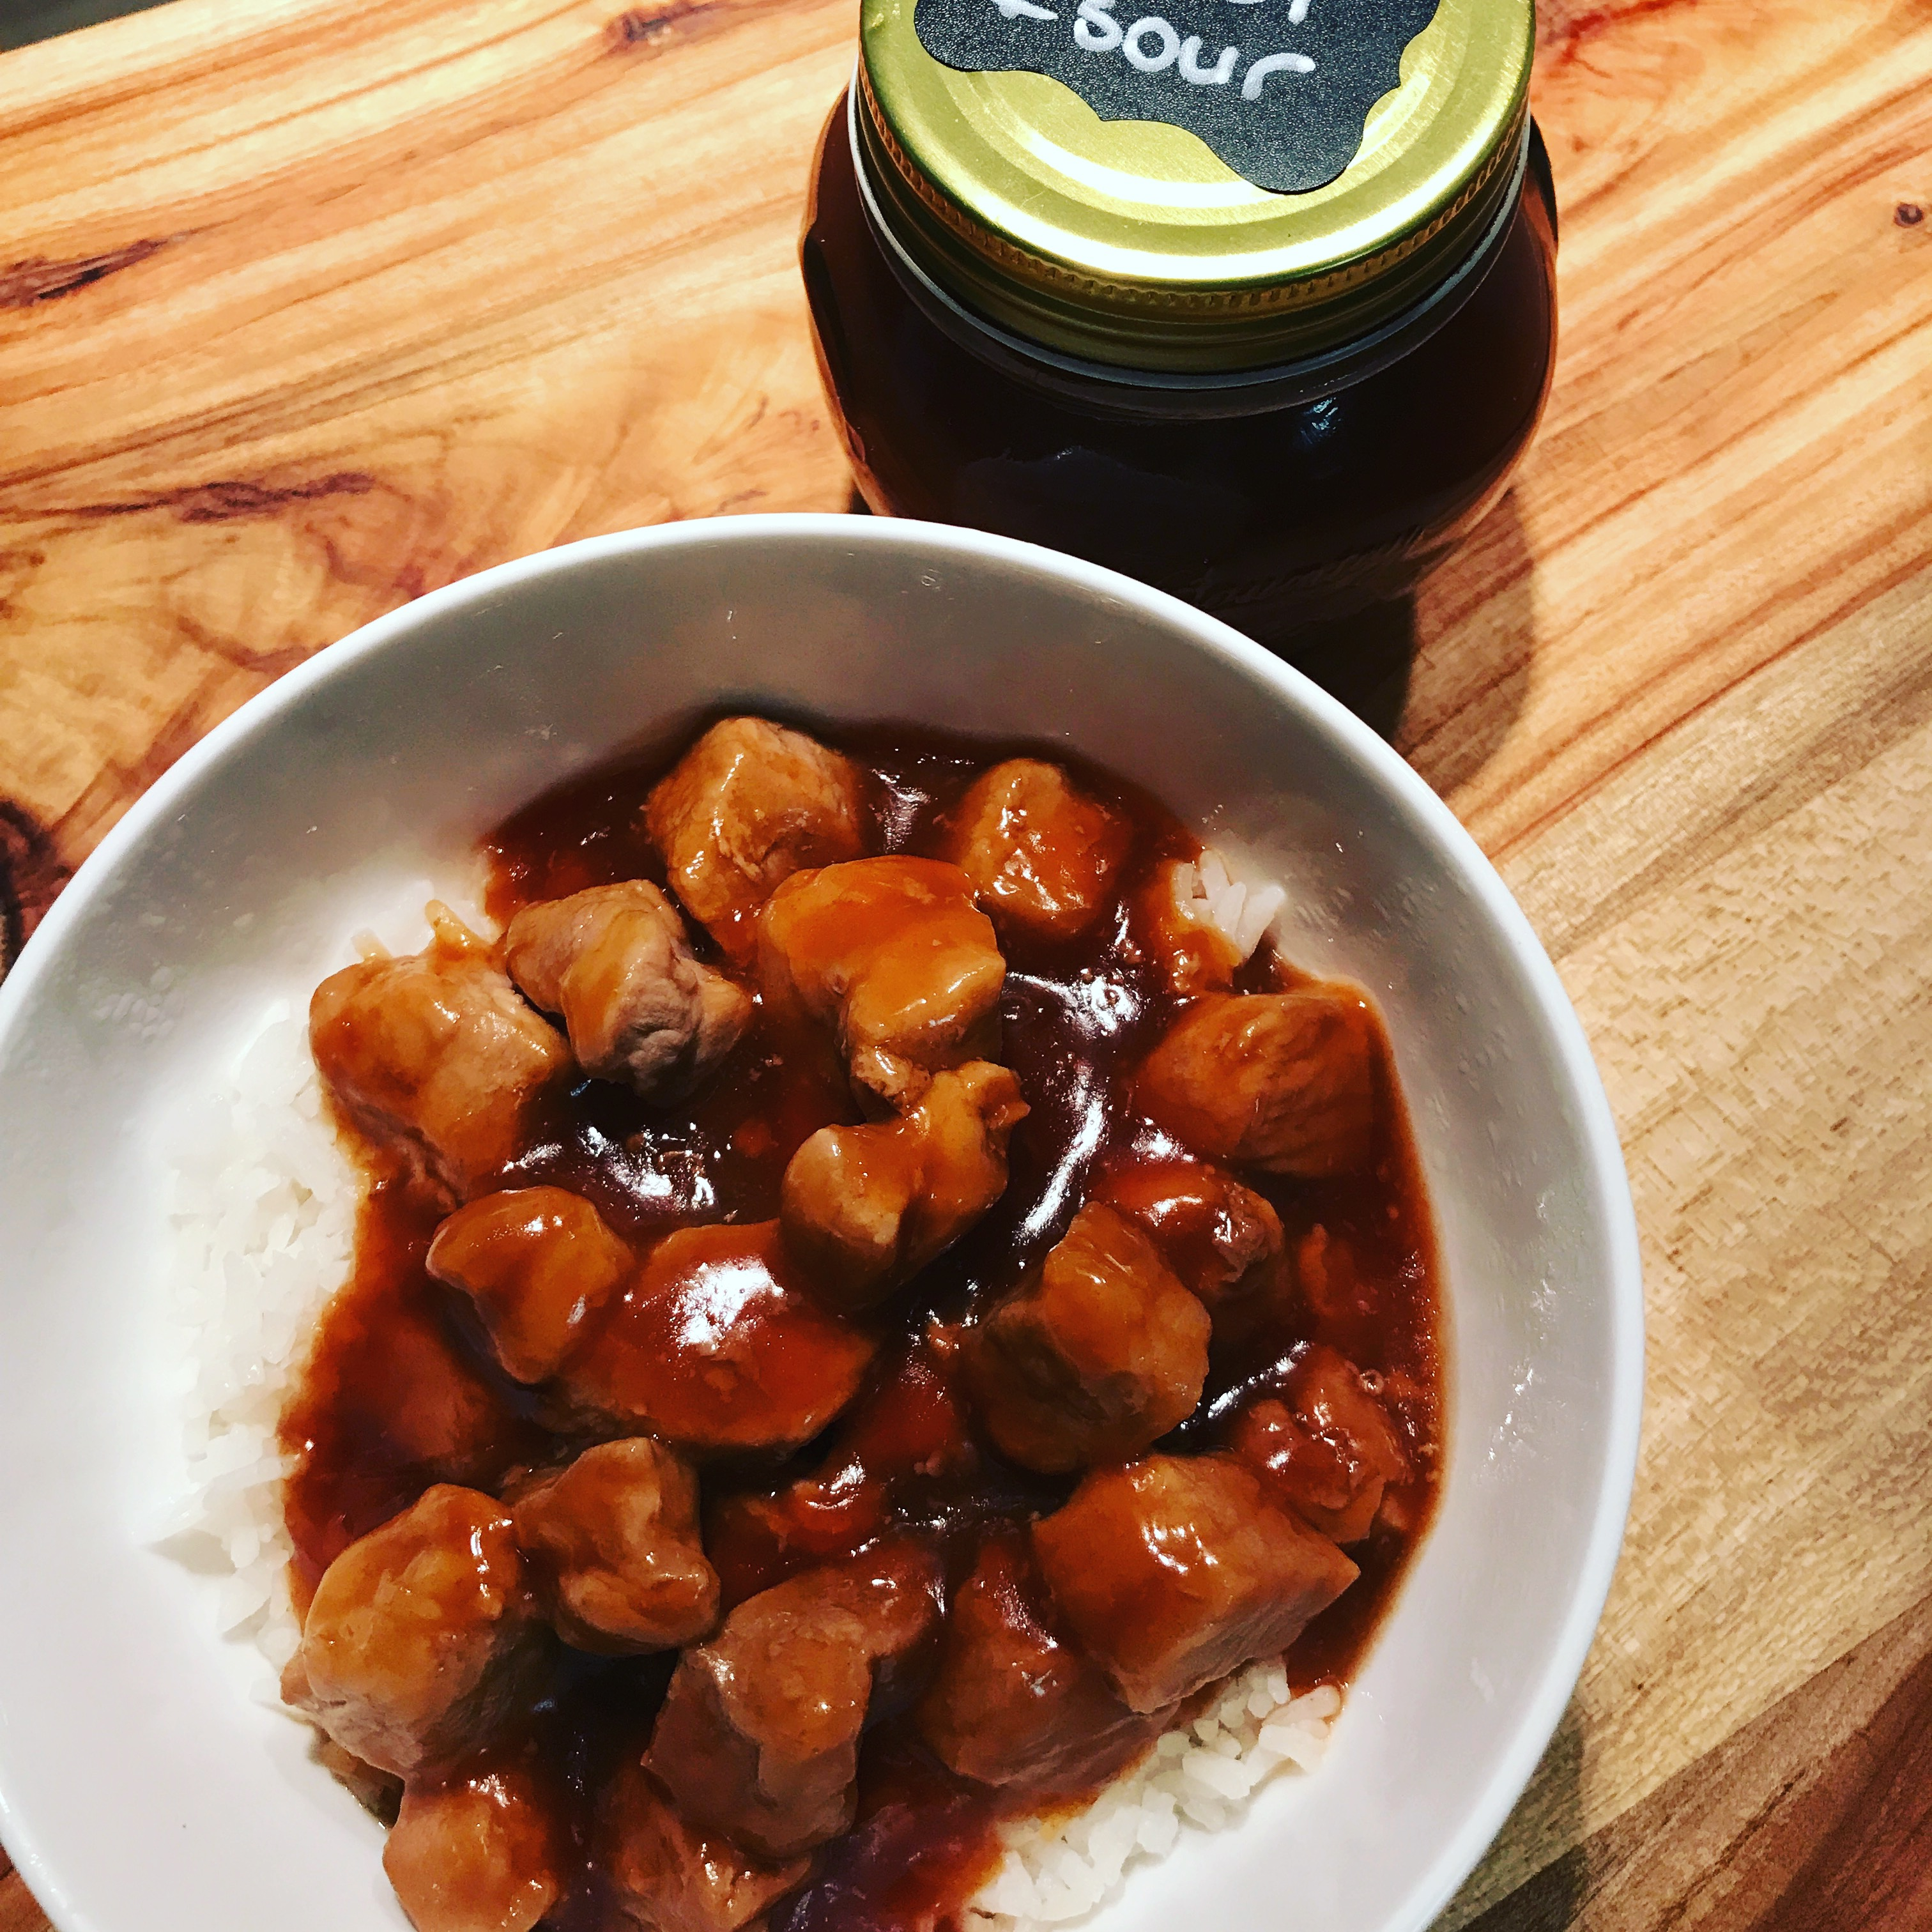 Sweet sour sauce like kantong but better back to food basics this recipe is a dump in a medium sized saucepan stir and simmer recipe it does not come any easier forumfinder Image collections